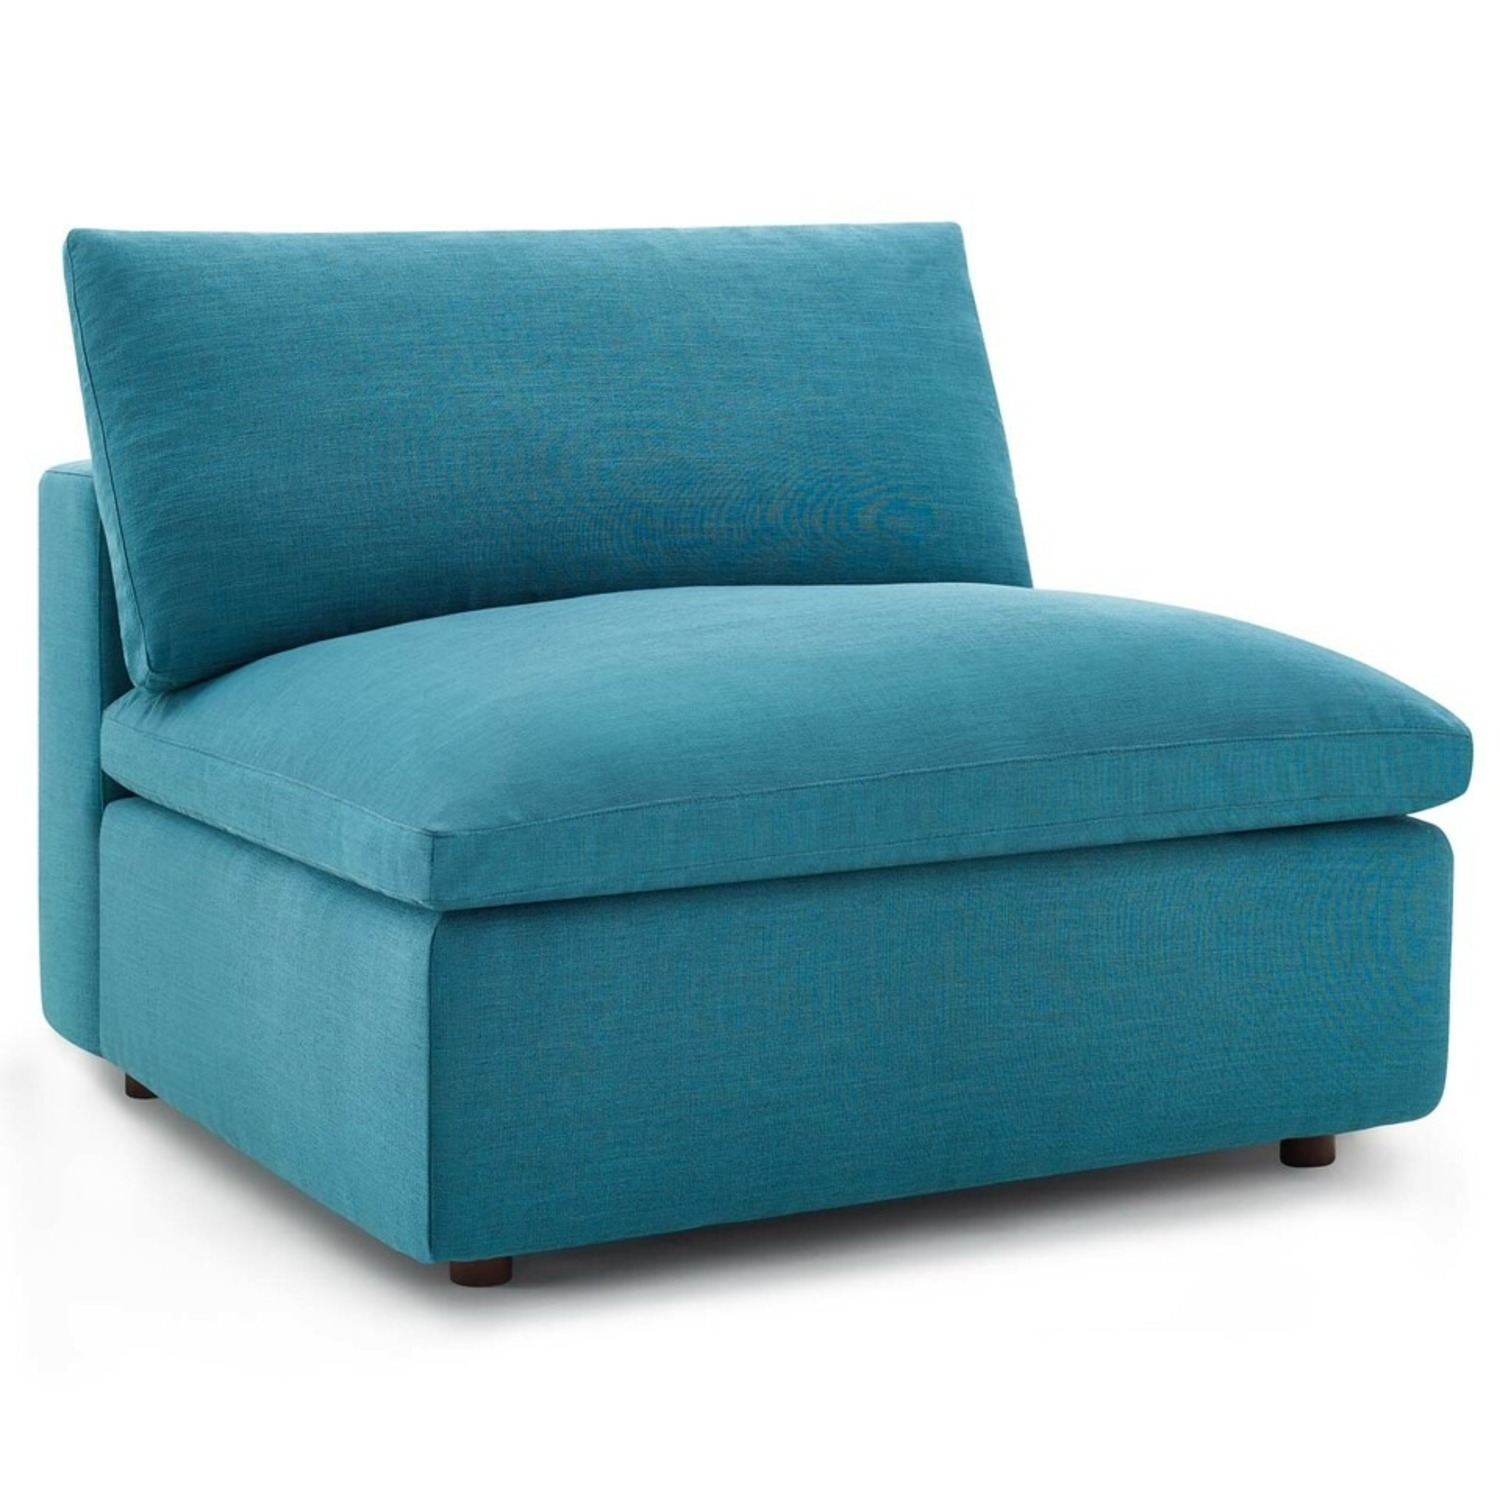 6-Piece Sectional Sofa In Teal Linen Fabric - image-2